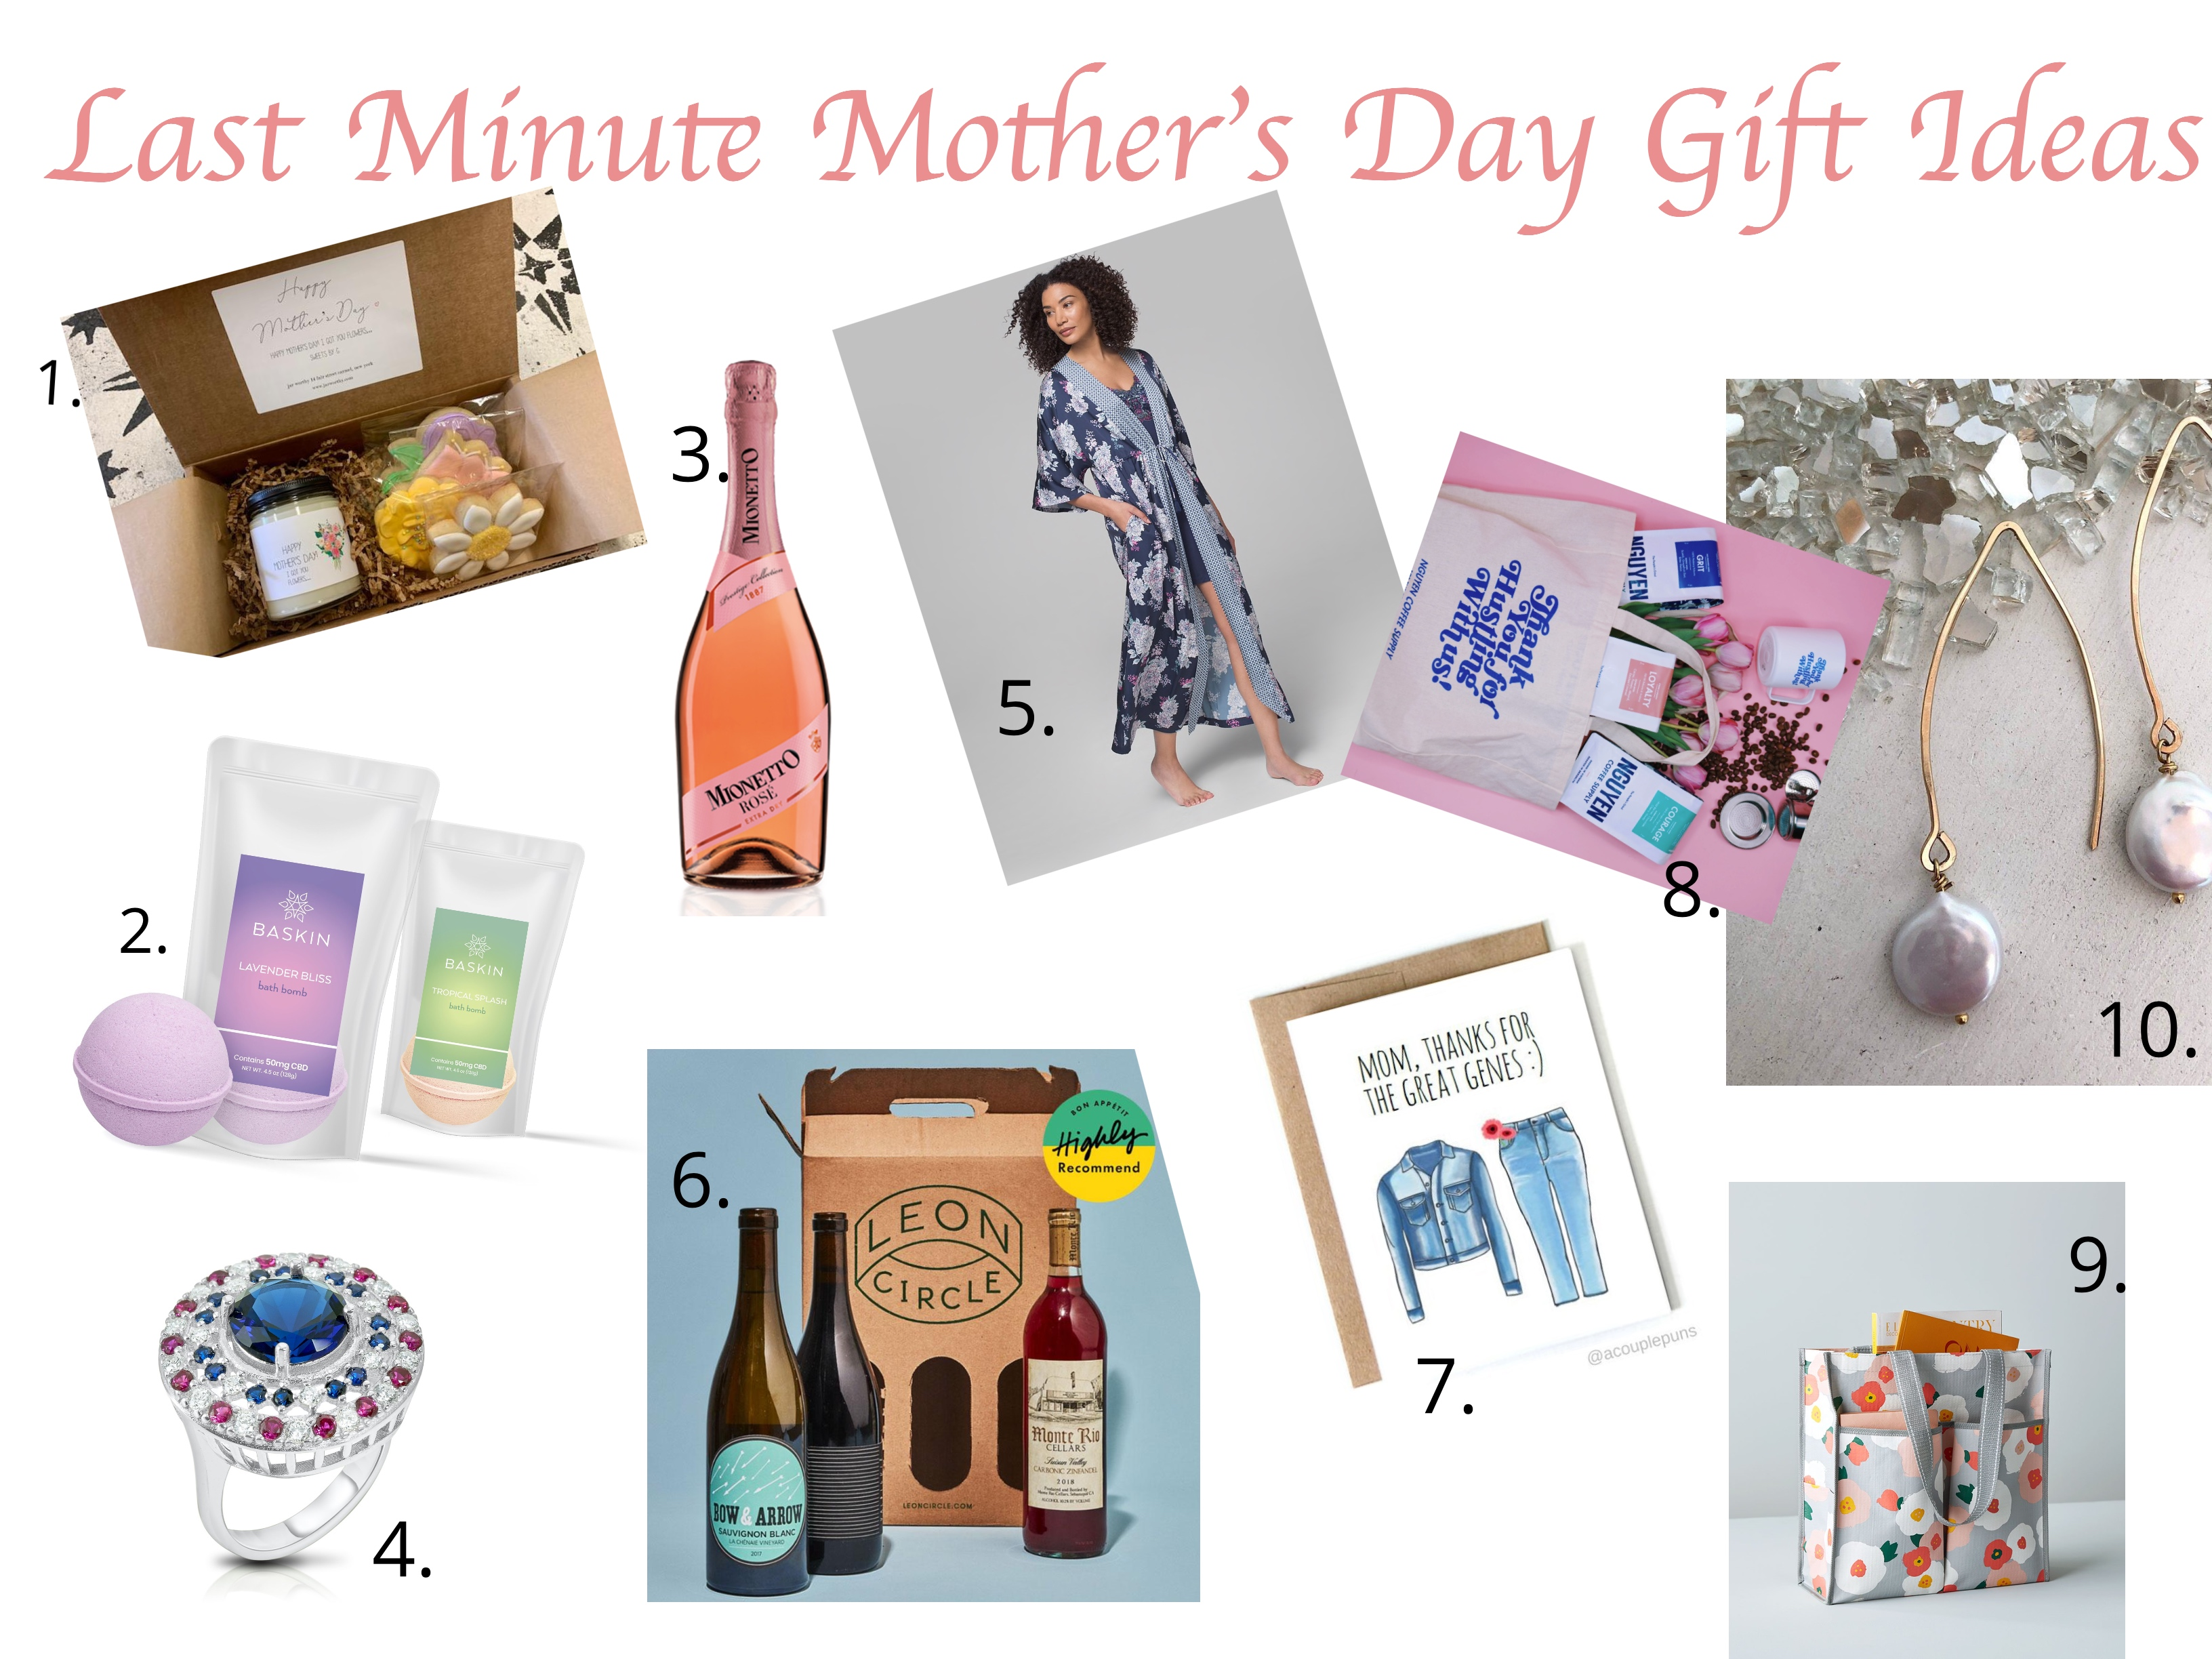 Last Minute Mother S Day Gift Ideas Manhattan With A Twist,West Lebanon New Hampshire Liquor Store